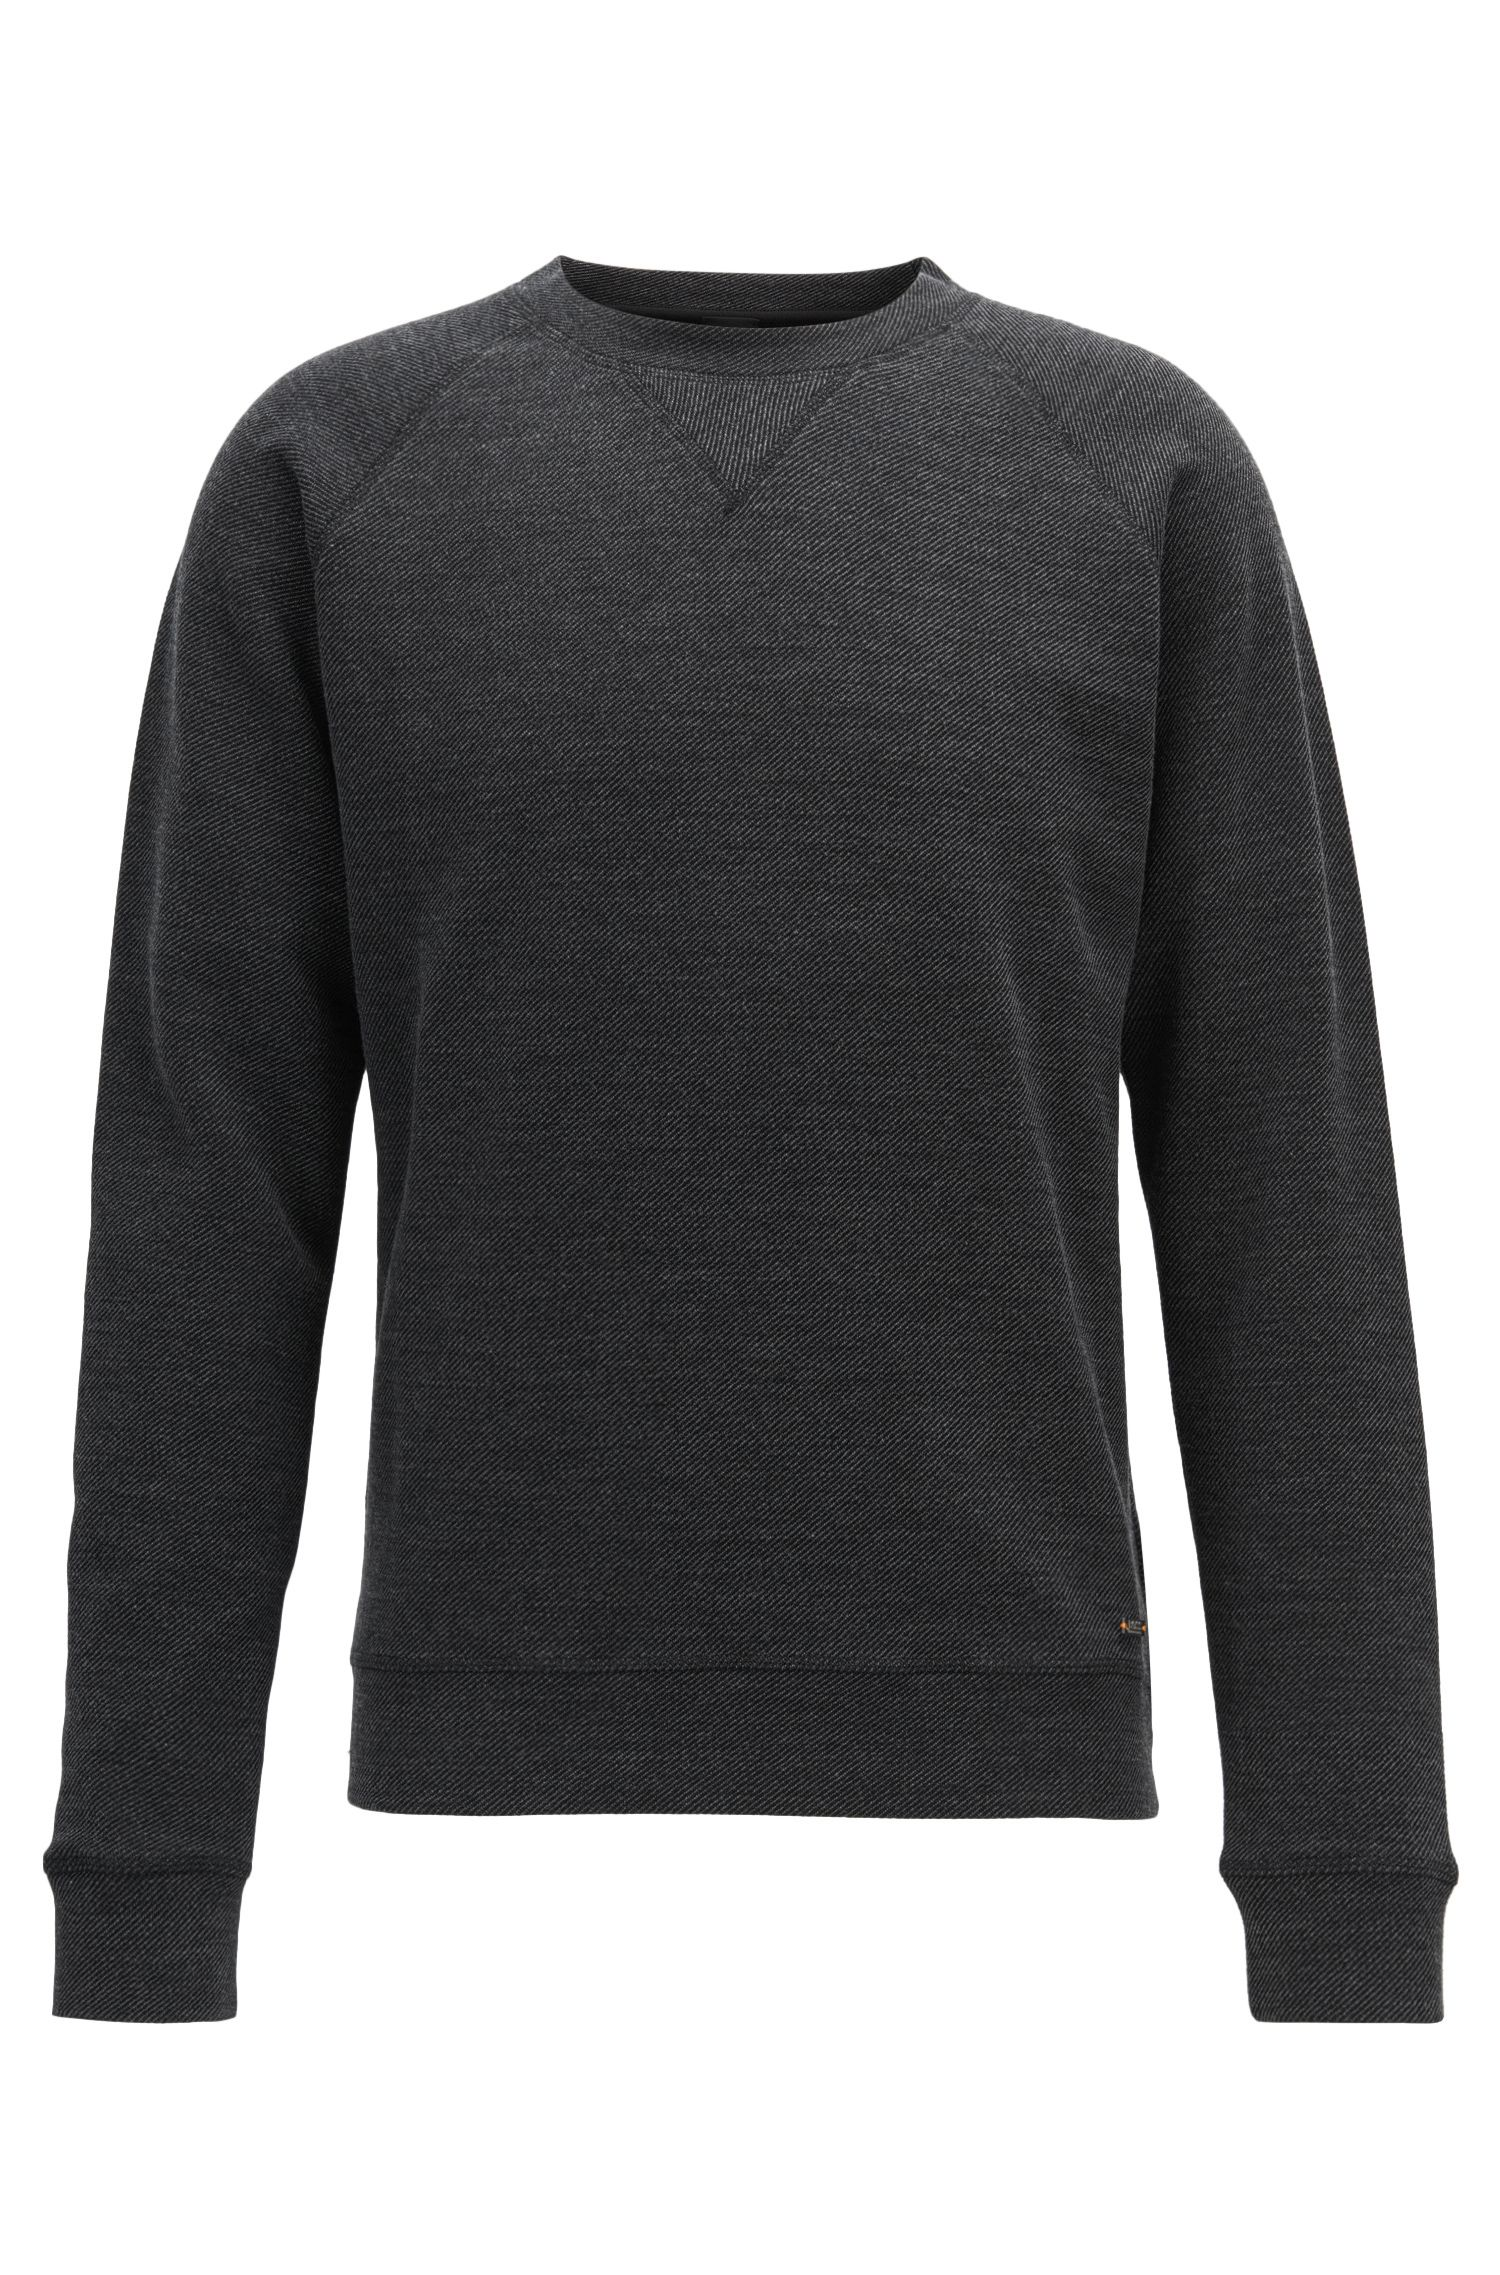 Crew-neck sweatshirt in a structured cotton blend